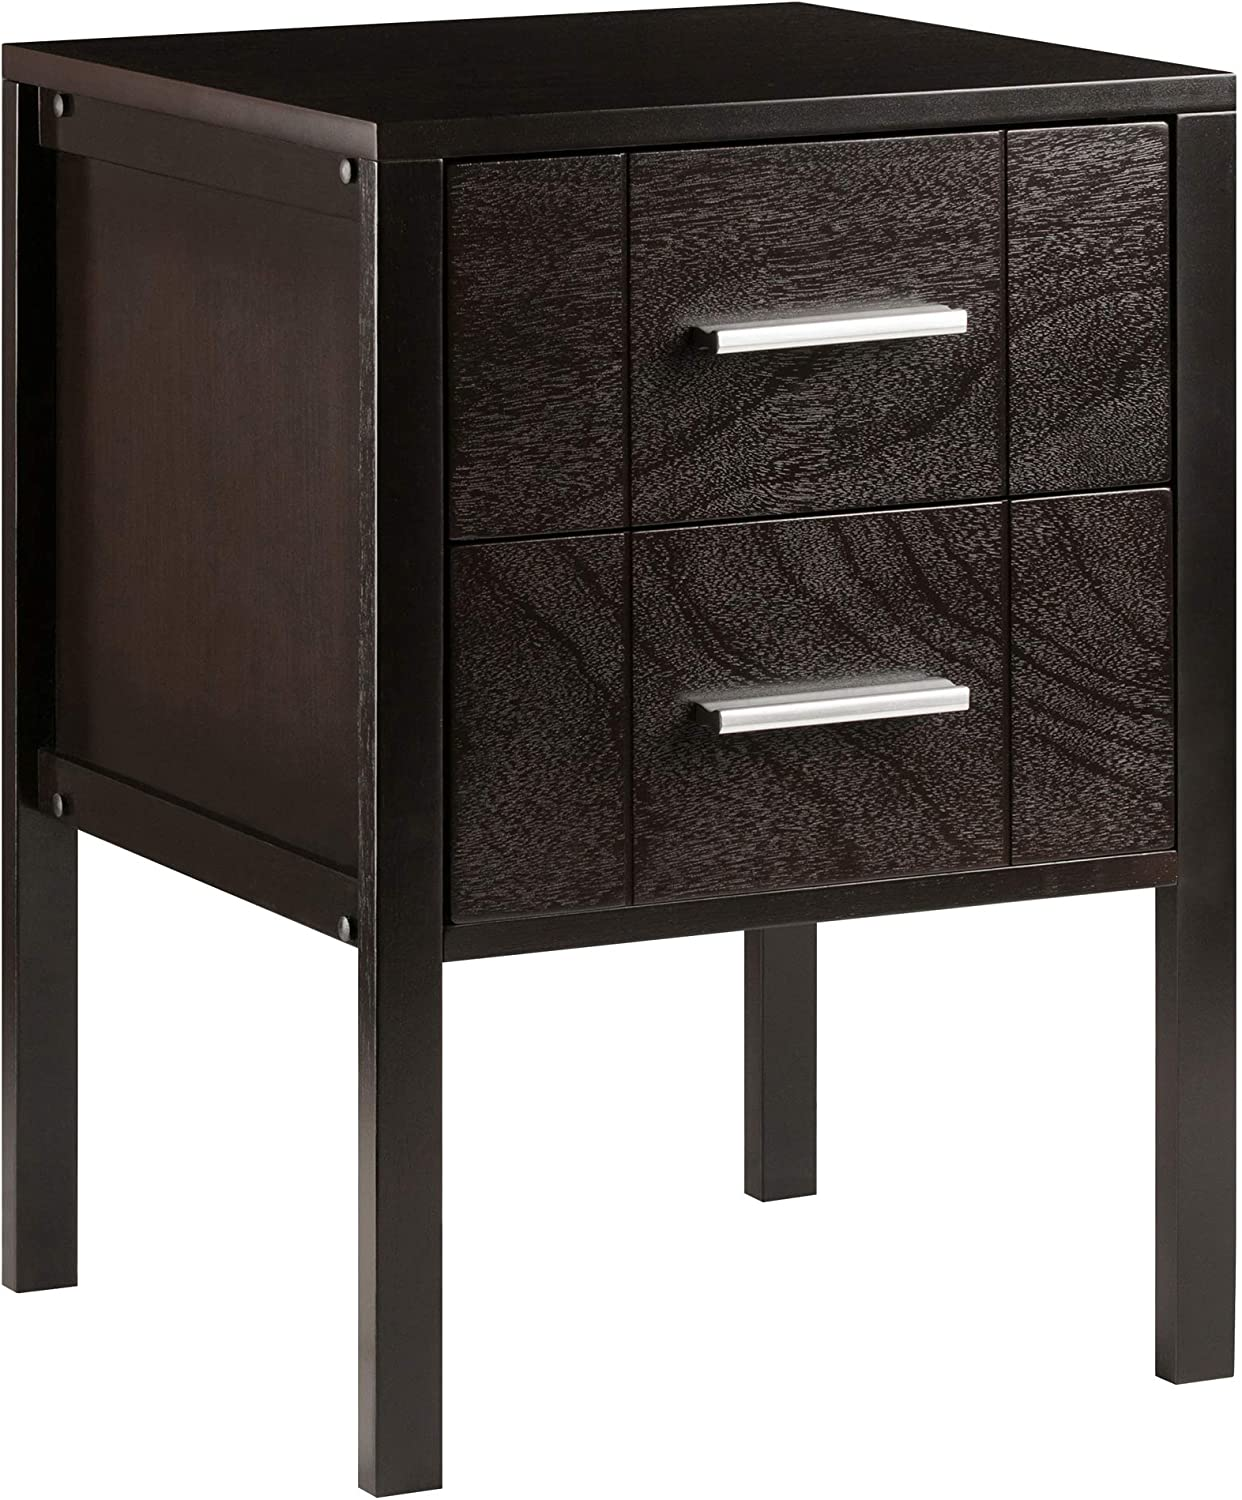 Winsome Wood Winsome 23215 Brielle Accent Night Table